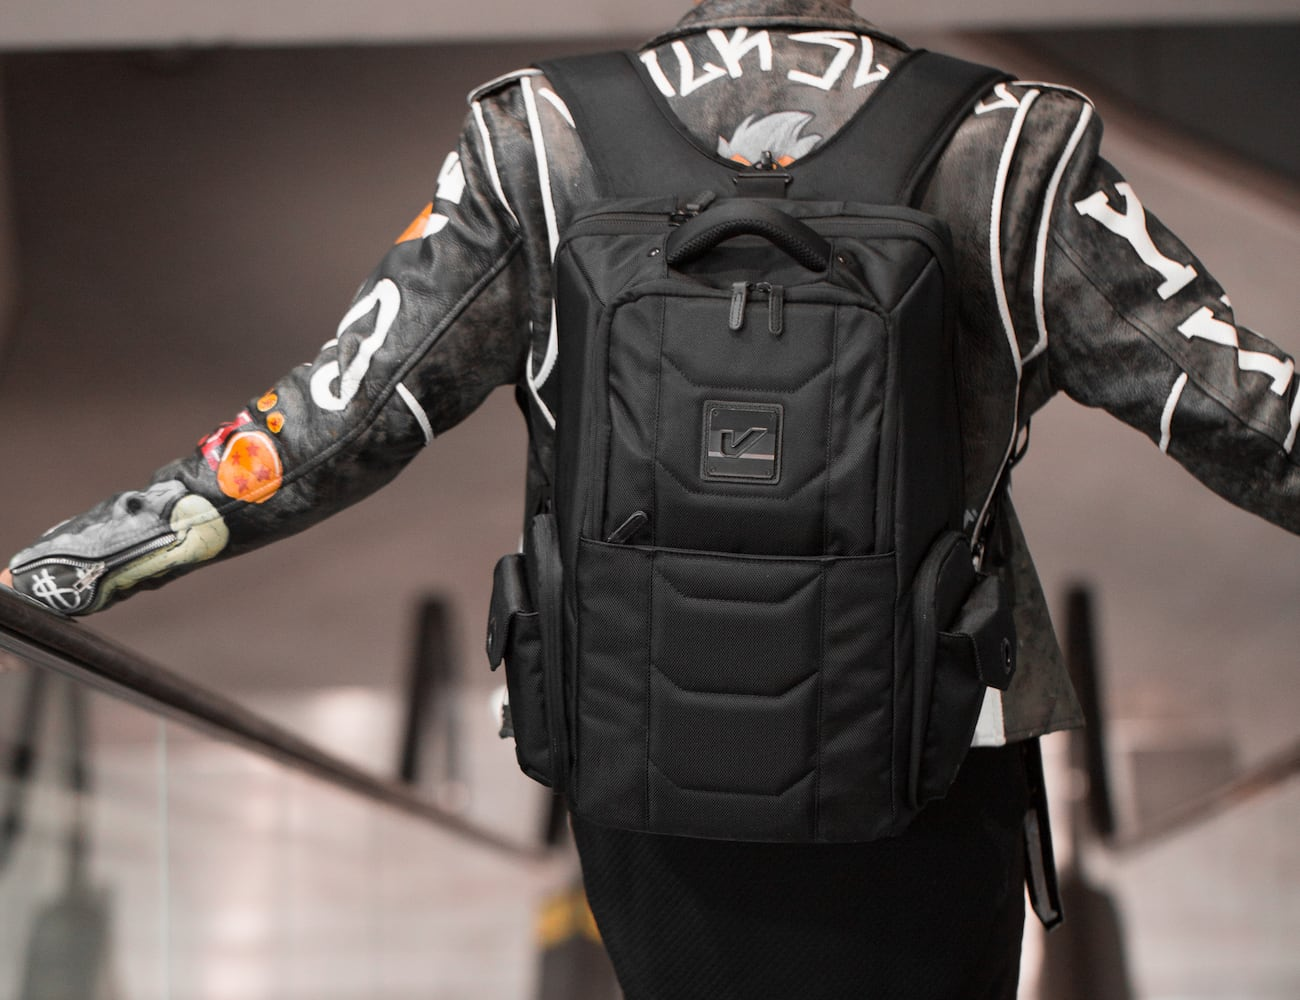 Gruv Gear Elite Traveler Backpack